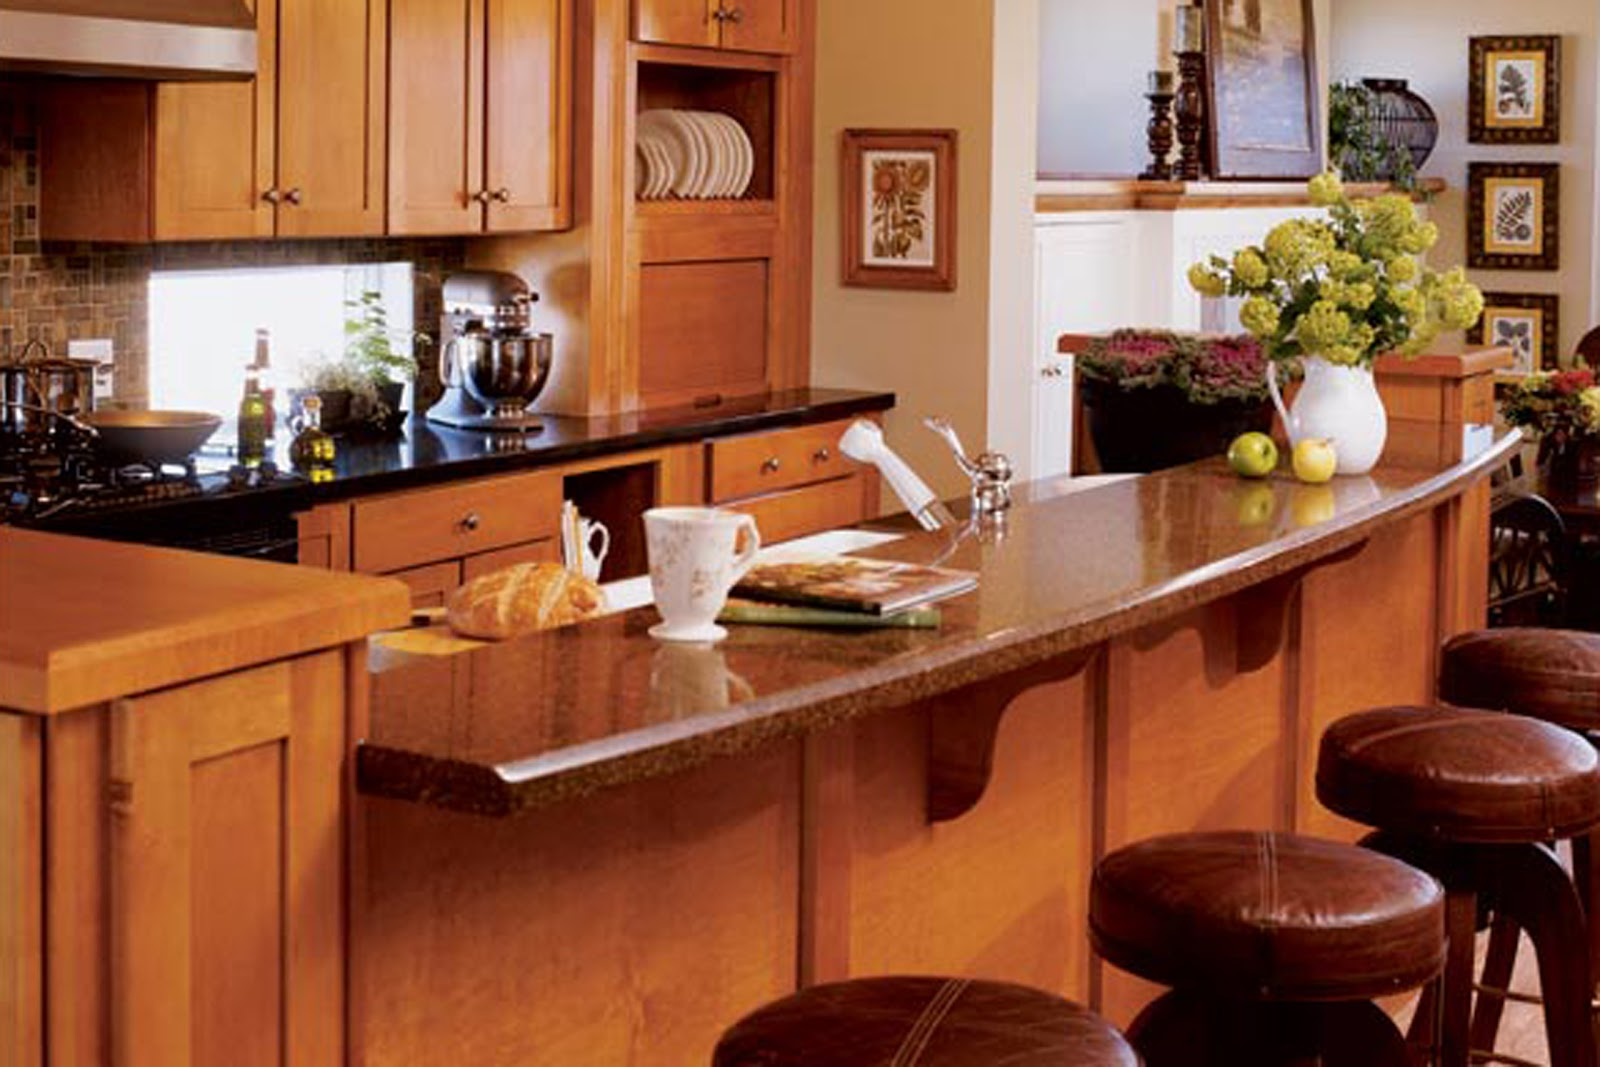 Indian kitchen design blog - Elegant Home Designs Blog Home Design Ideas 3 Tier Kitchen Island